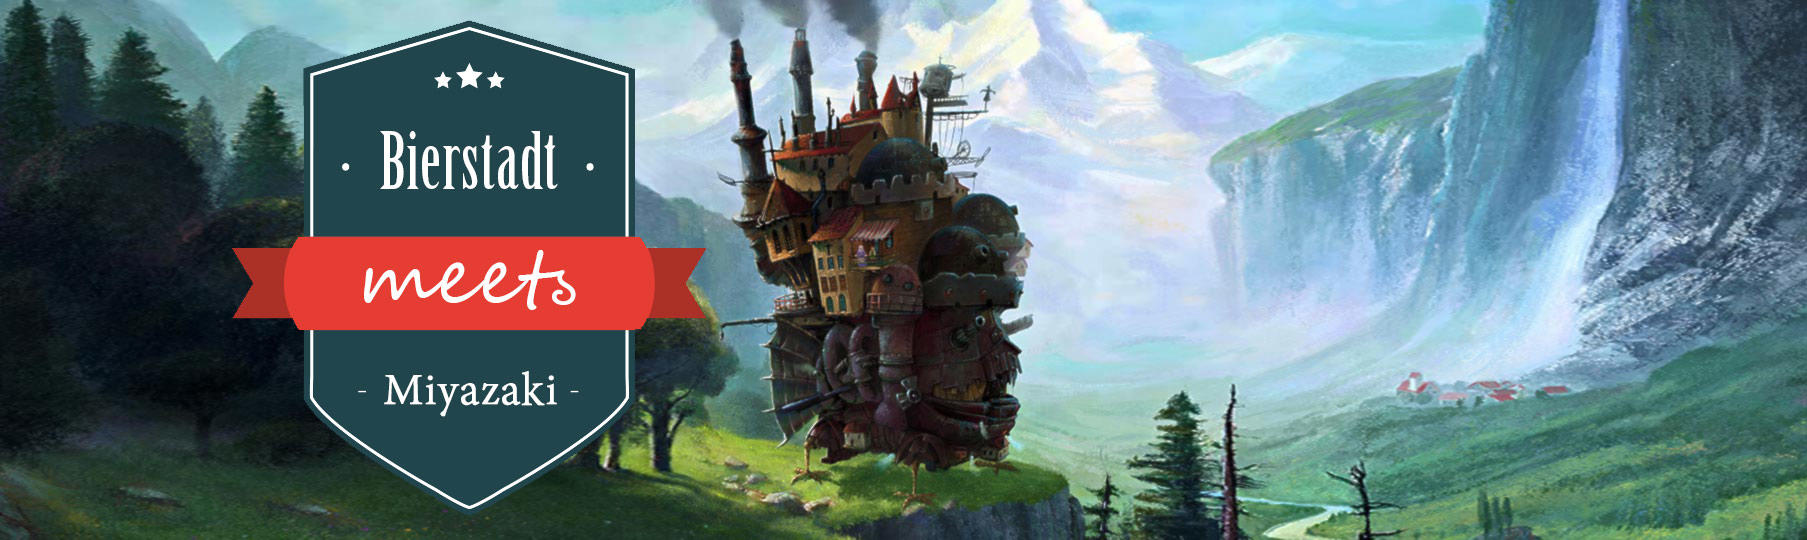 Howl´s Moving Castle at Staubbach Falls by Oliver Wetter / Fantasio http://fav.me/d7hib6v